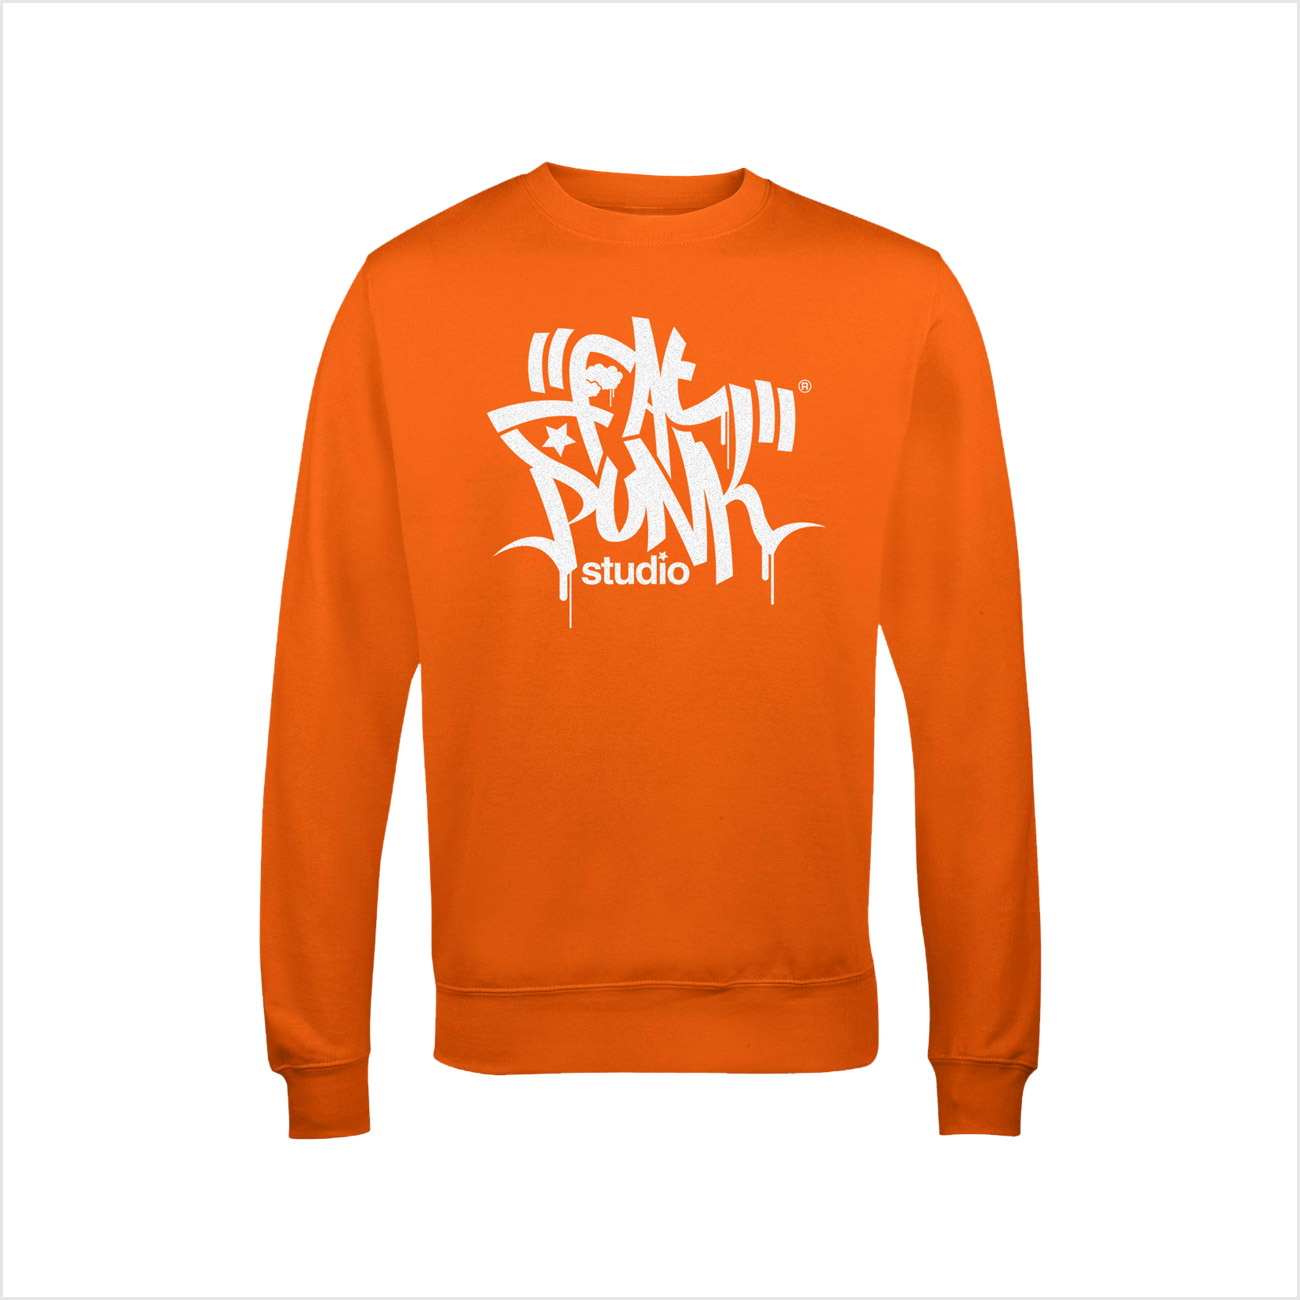 fat-punk-studio-team-logo-sweatshirt-orange-crush-03